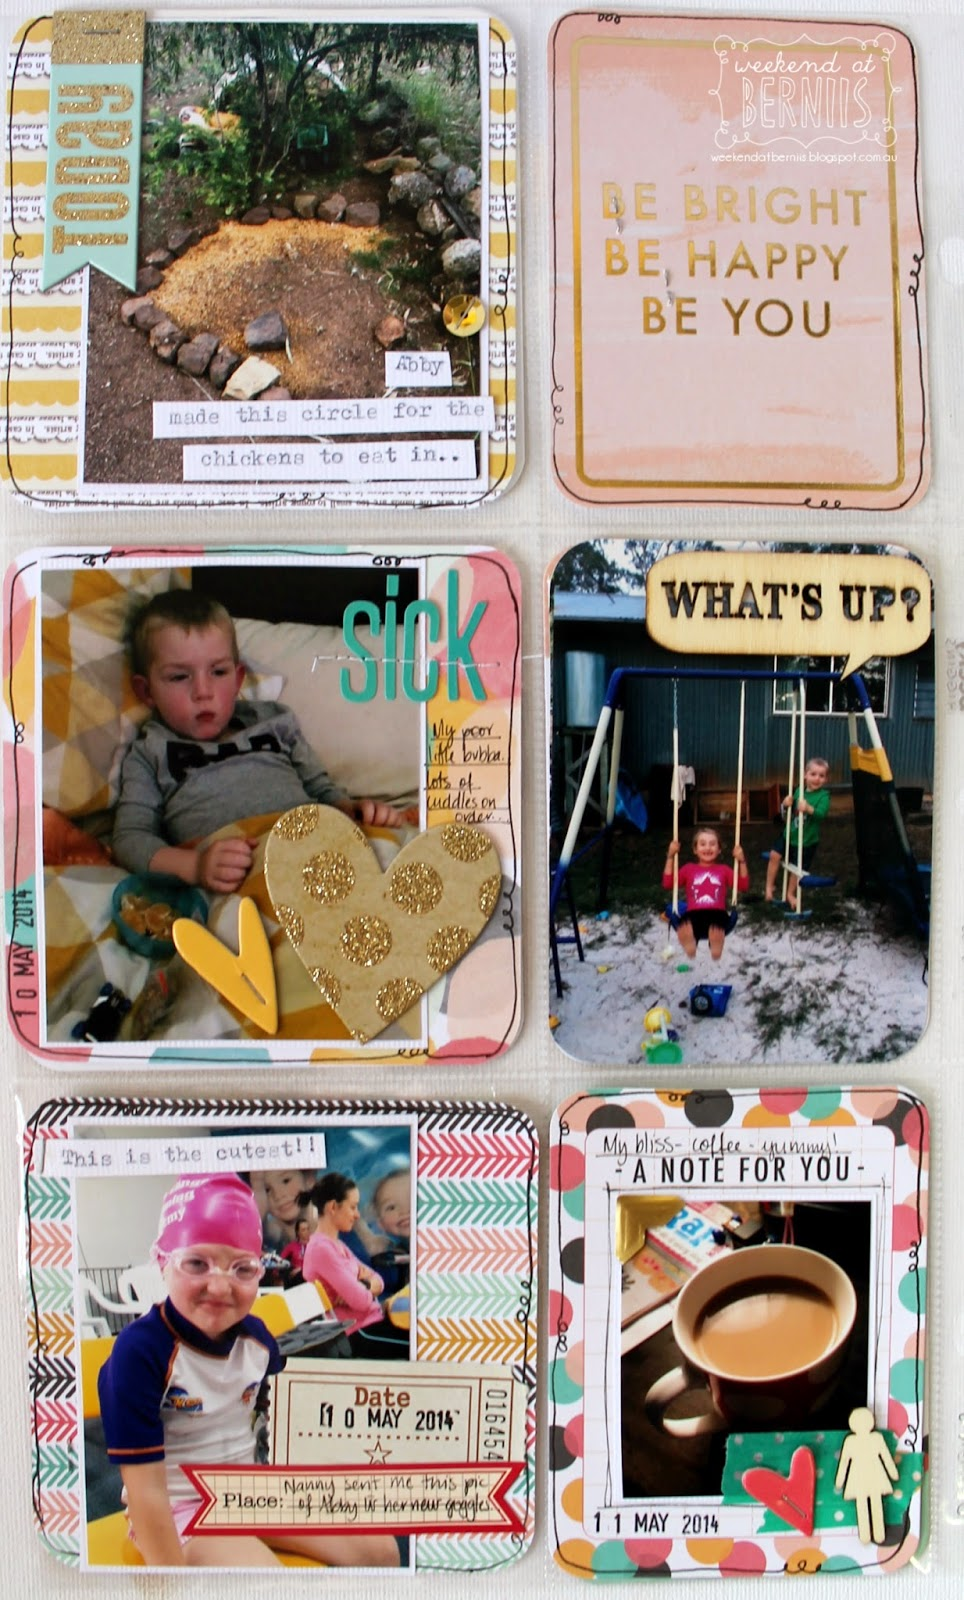 Week 19 -2014 Project Life layout by Bernii Miller using the Be Bright collection by Becky Higgins.